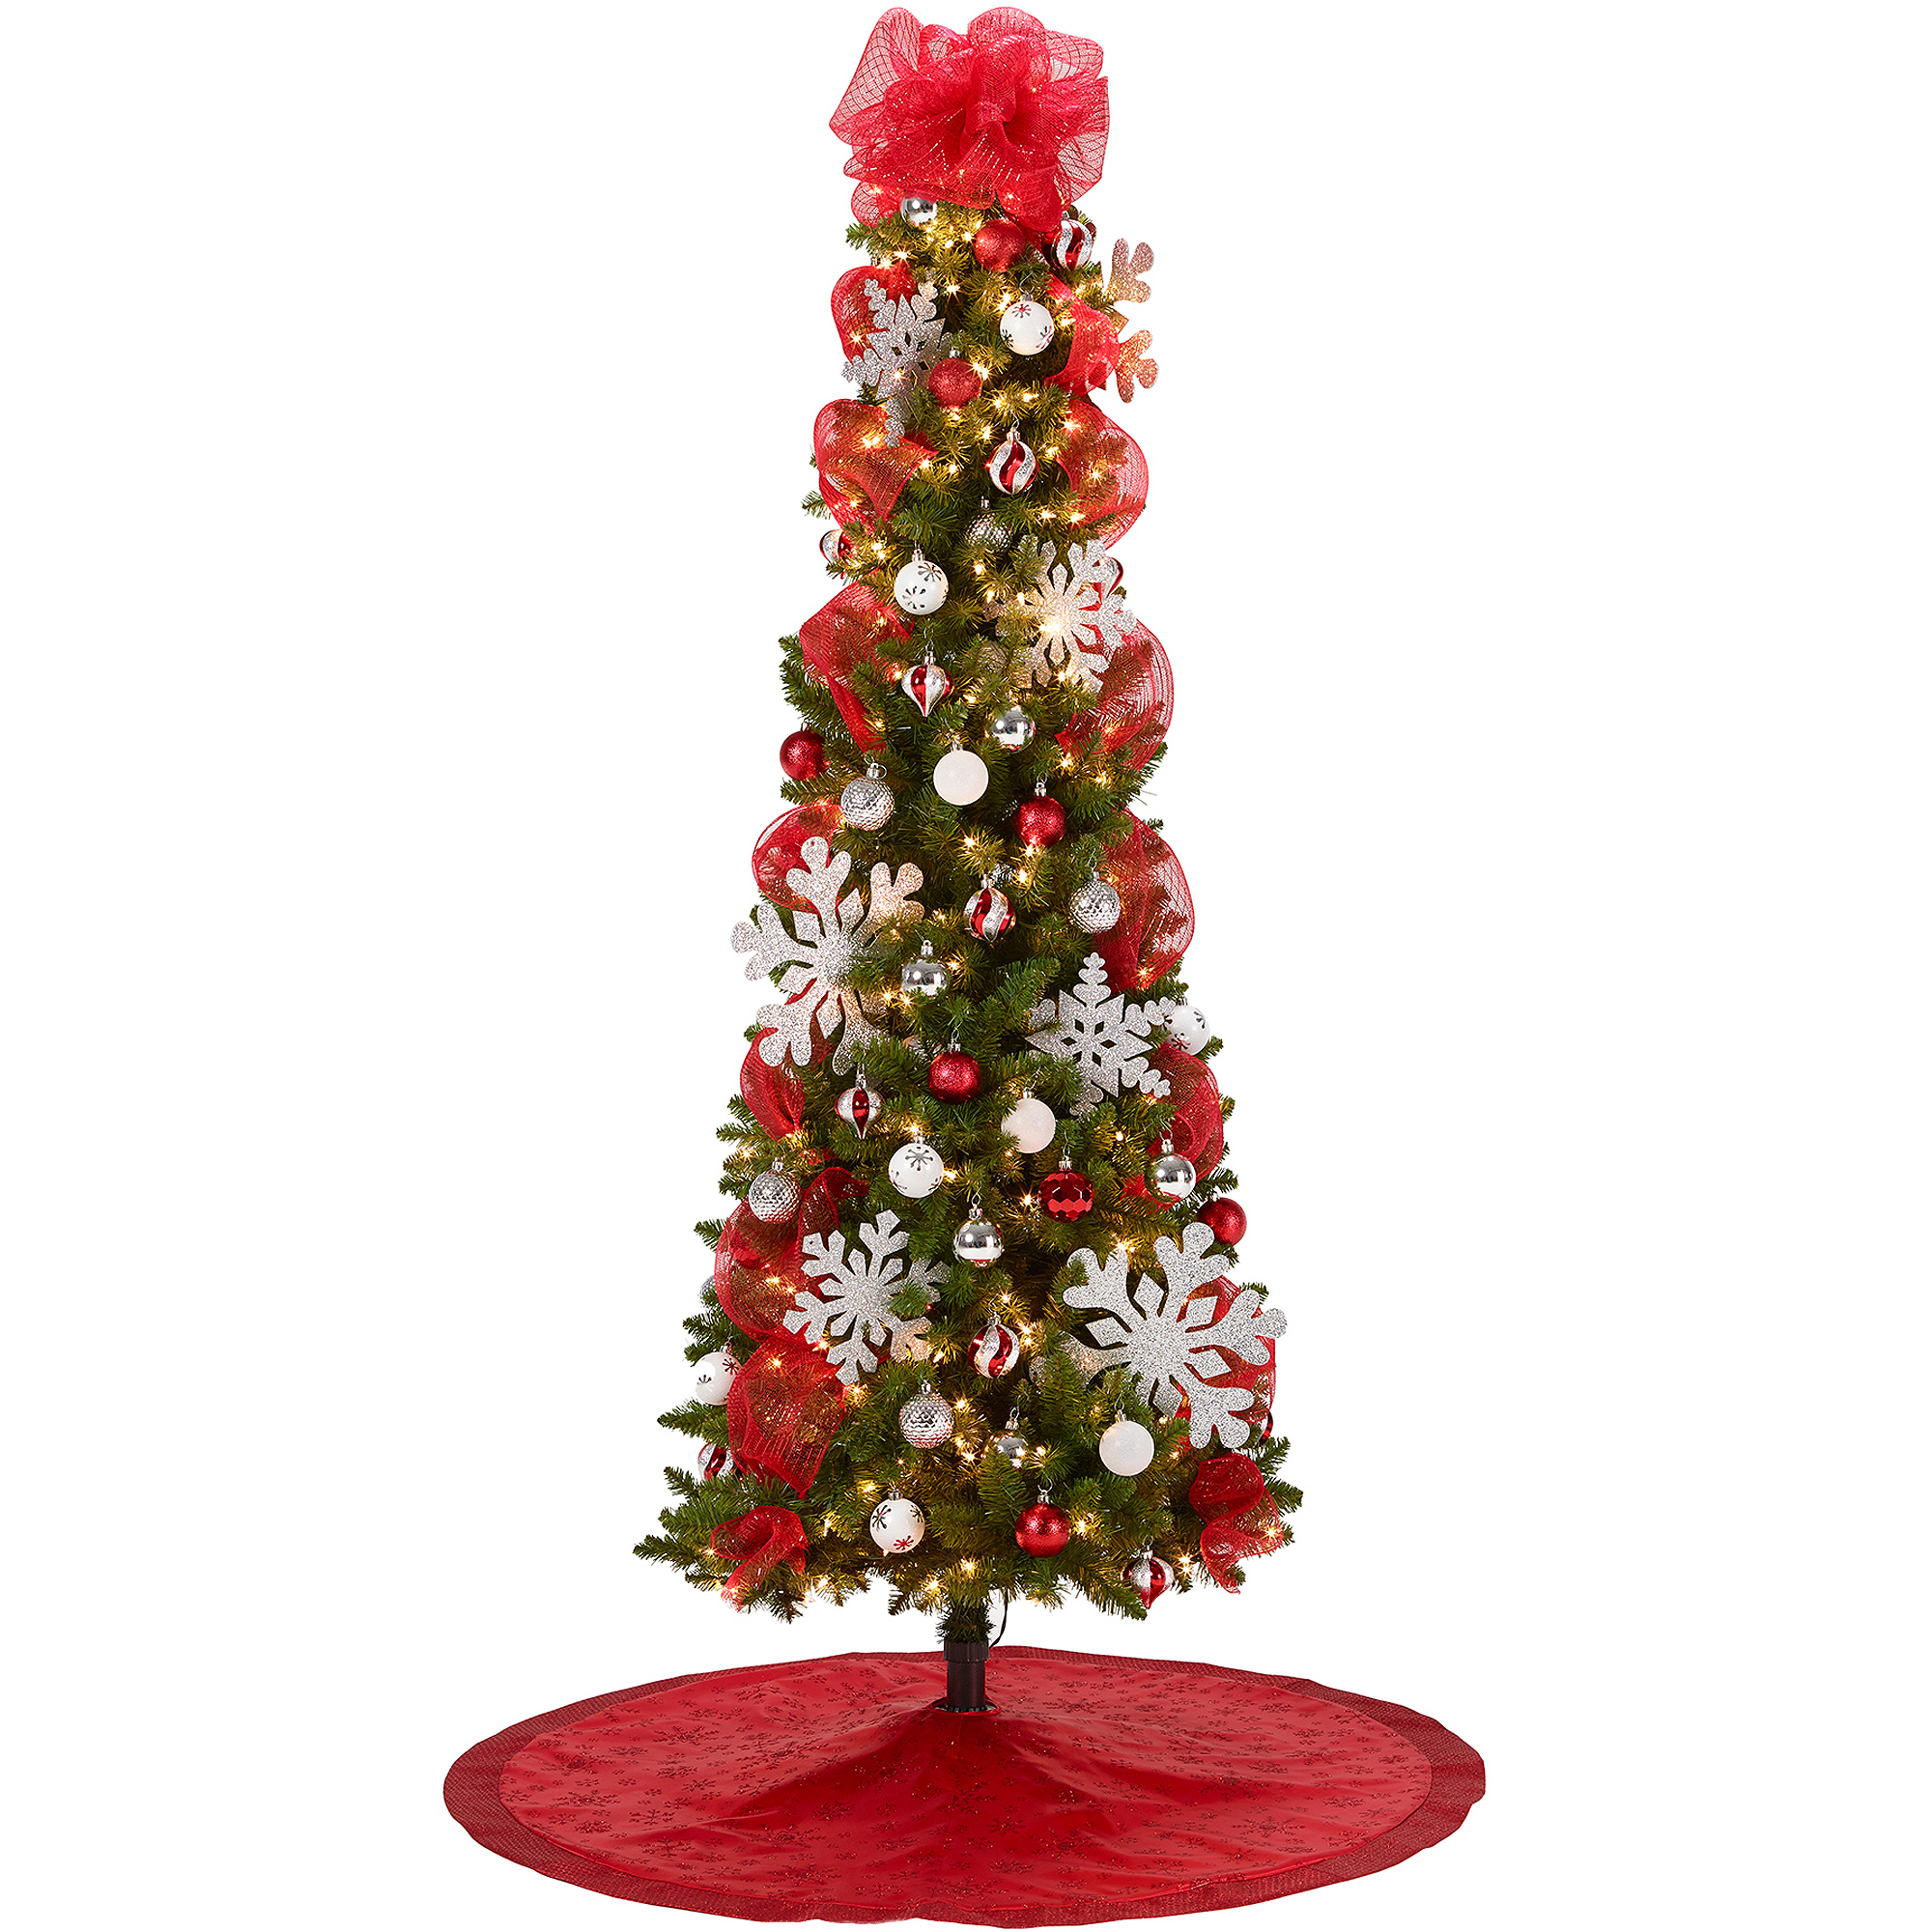 7 pre lit brinkley pine christmas tree with red and silver decoration kit walmartcom - Walmart Christmas Decorations